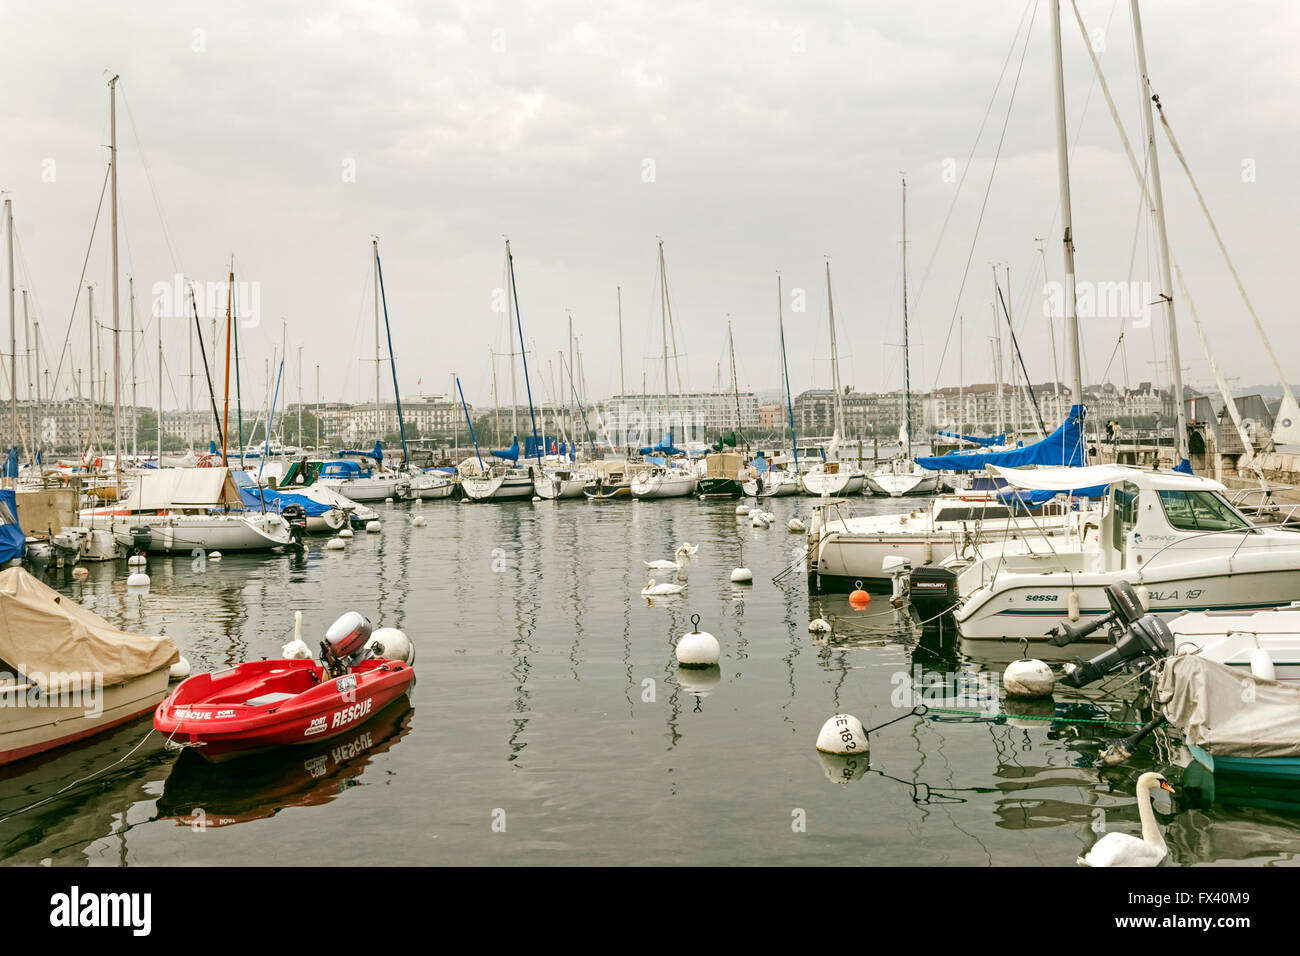 Jeneve, Switzerland - october 4, 2013: centre if city on Lac Leman, Geneve Lake, at autumn cloudy day - Stock Image